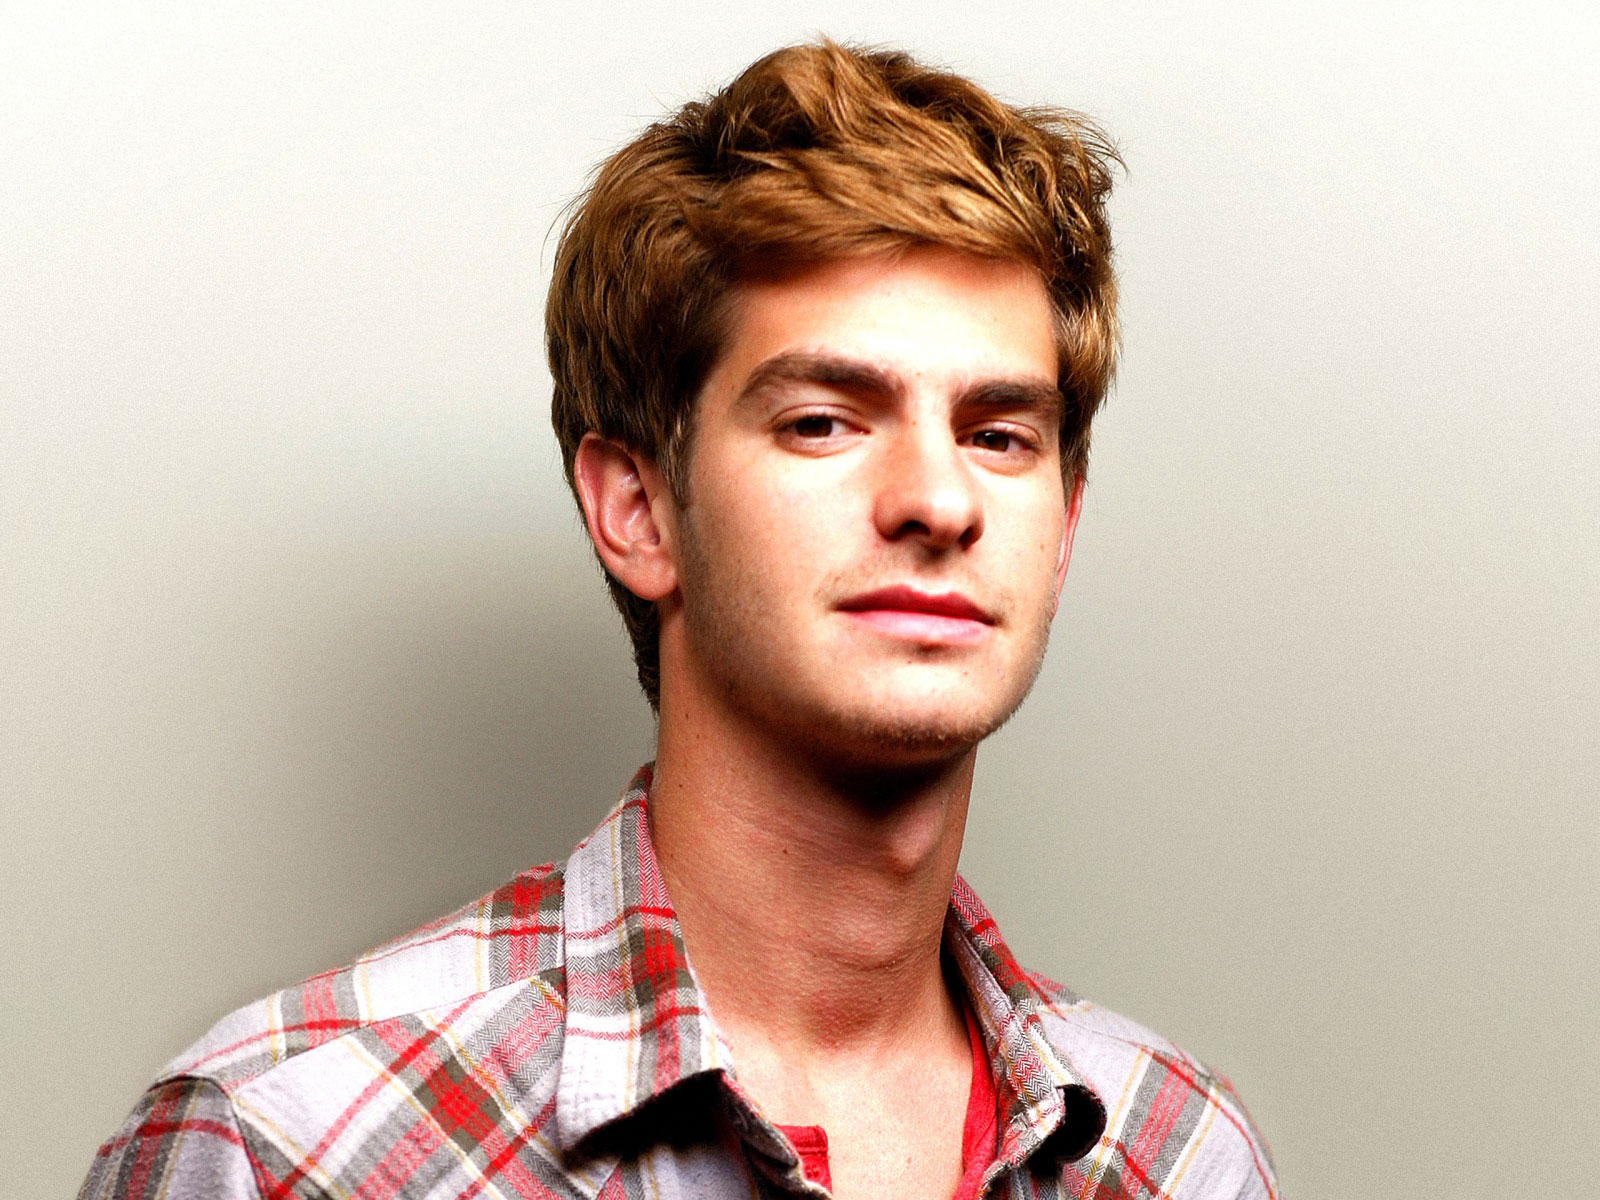 Quotes by Andrew Garfi... Andrew Garfield Actor